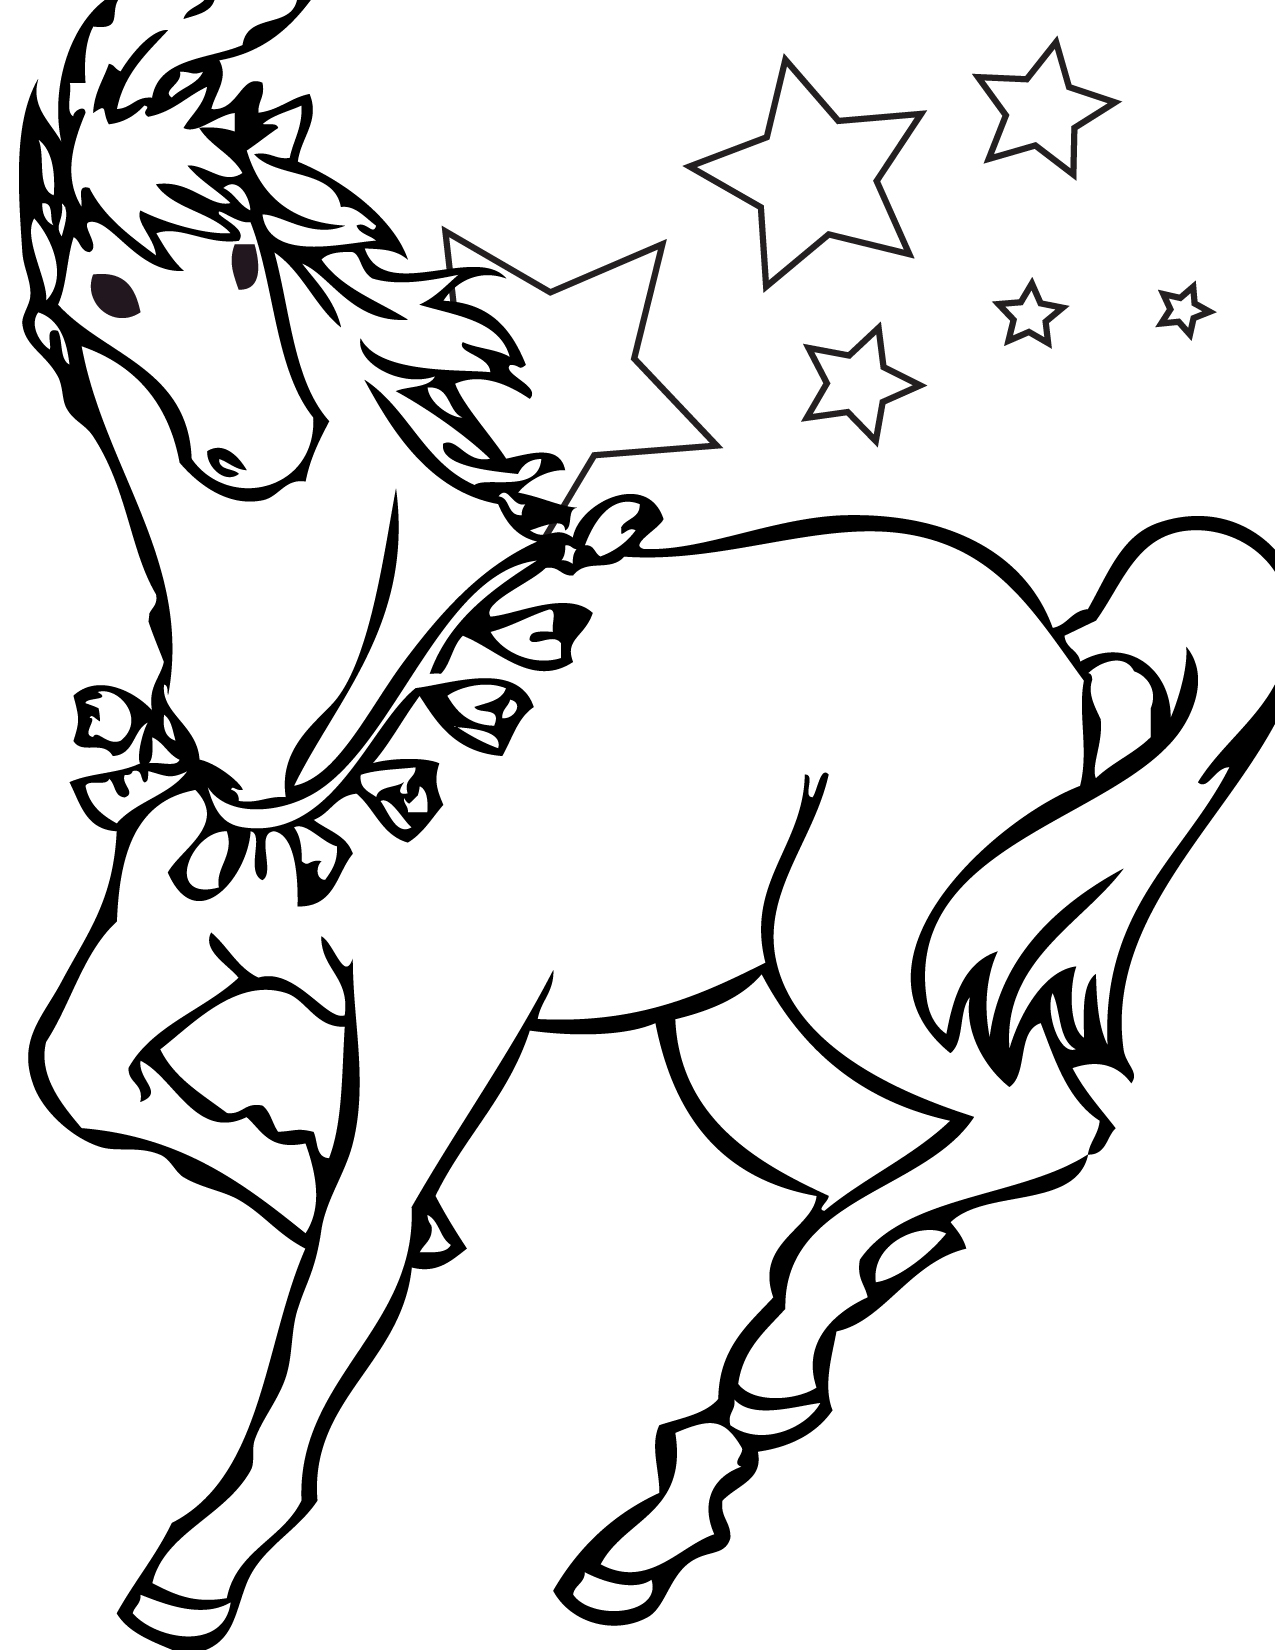 coloring images horse horse coloring pages preschool and kindergarten coloring horse images